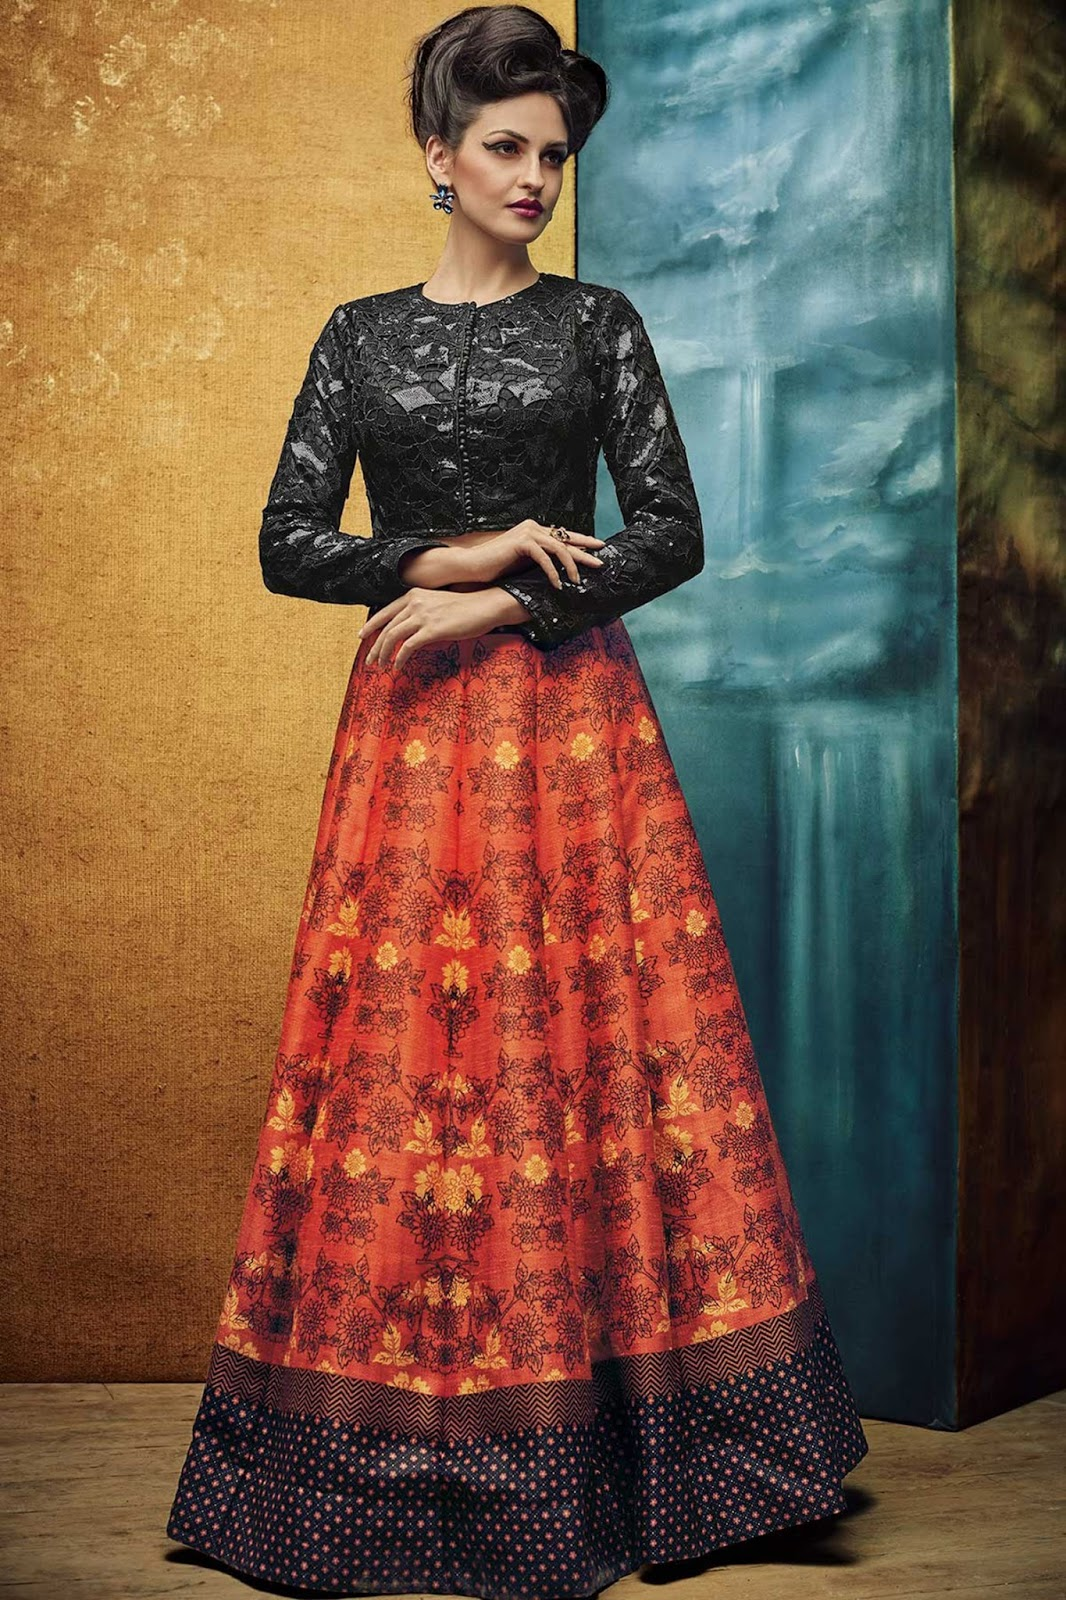 Vrunda – New Collection Digital Printed Lehenga Choli Buy Online